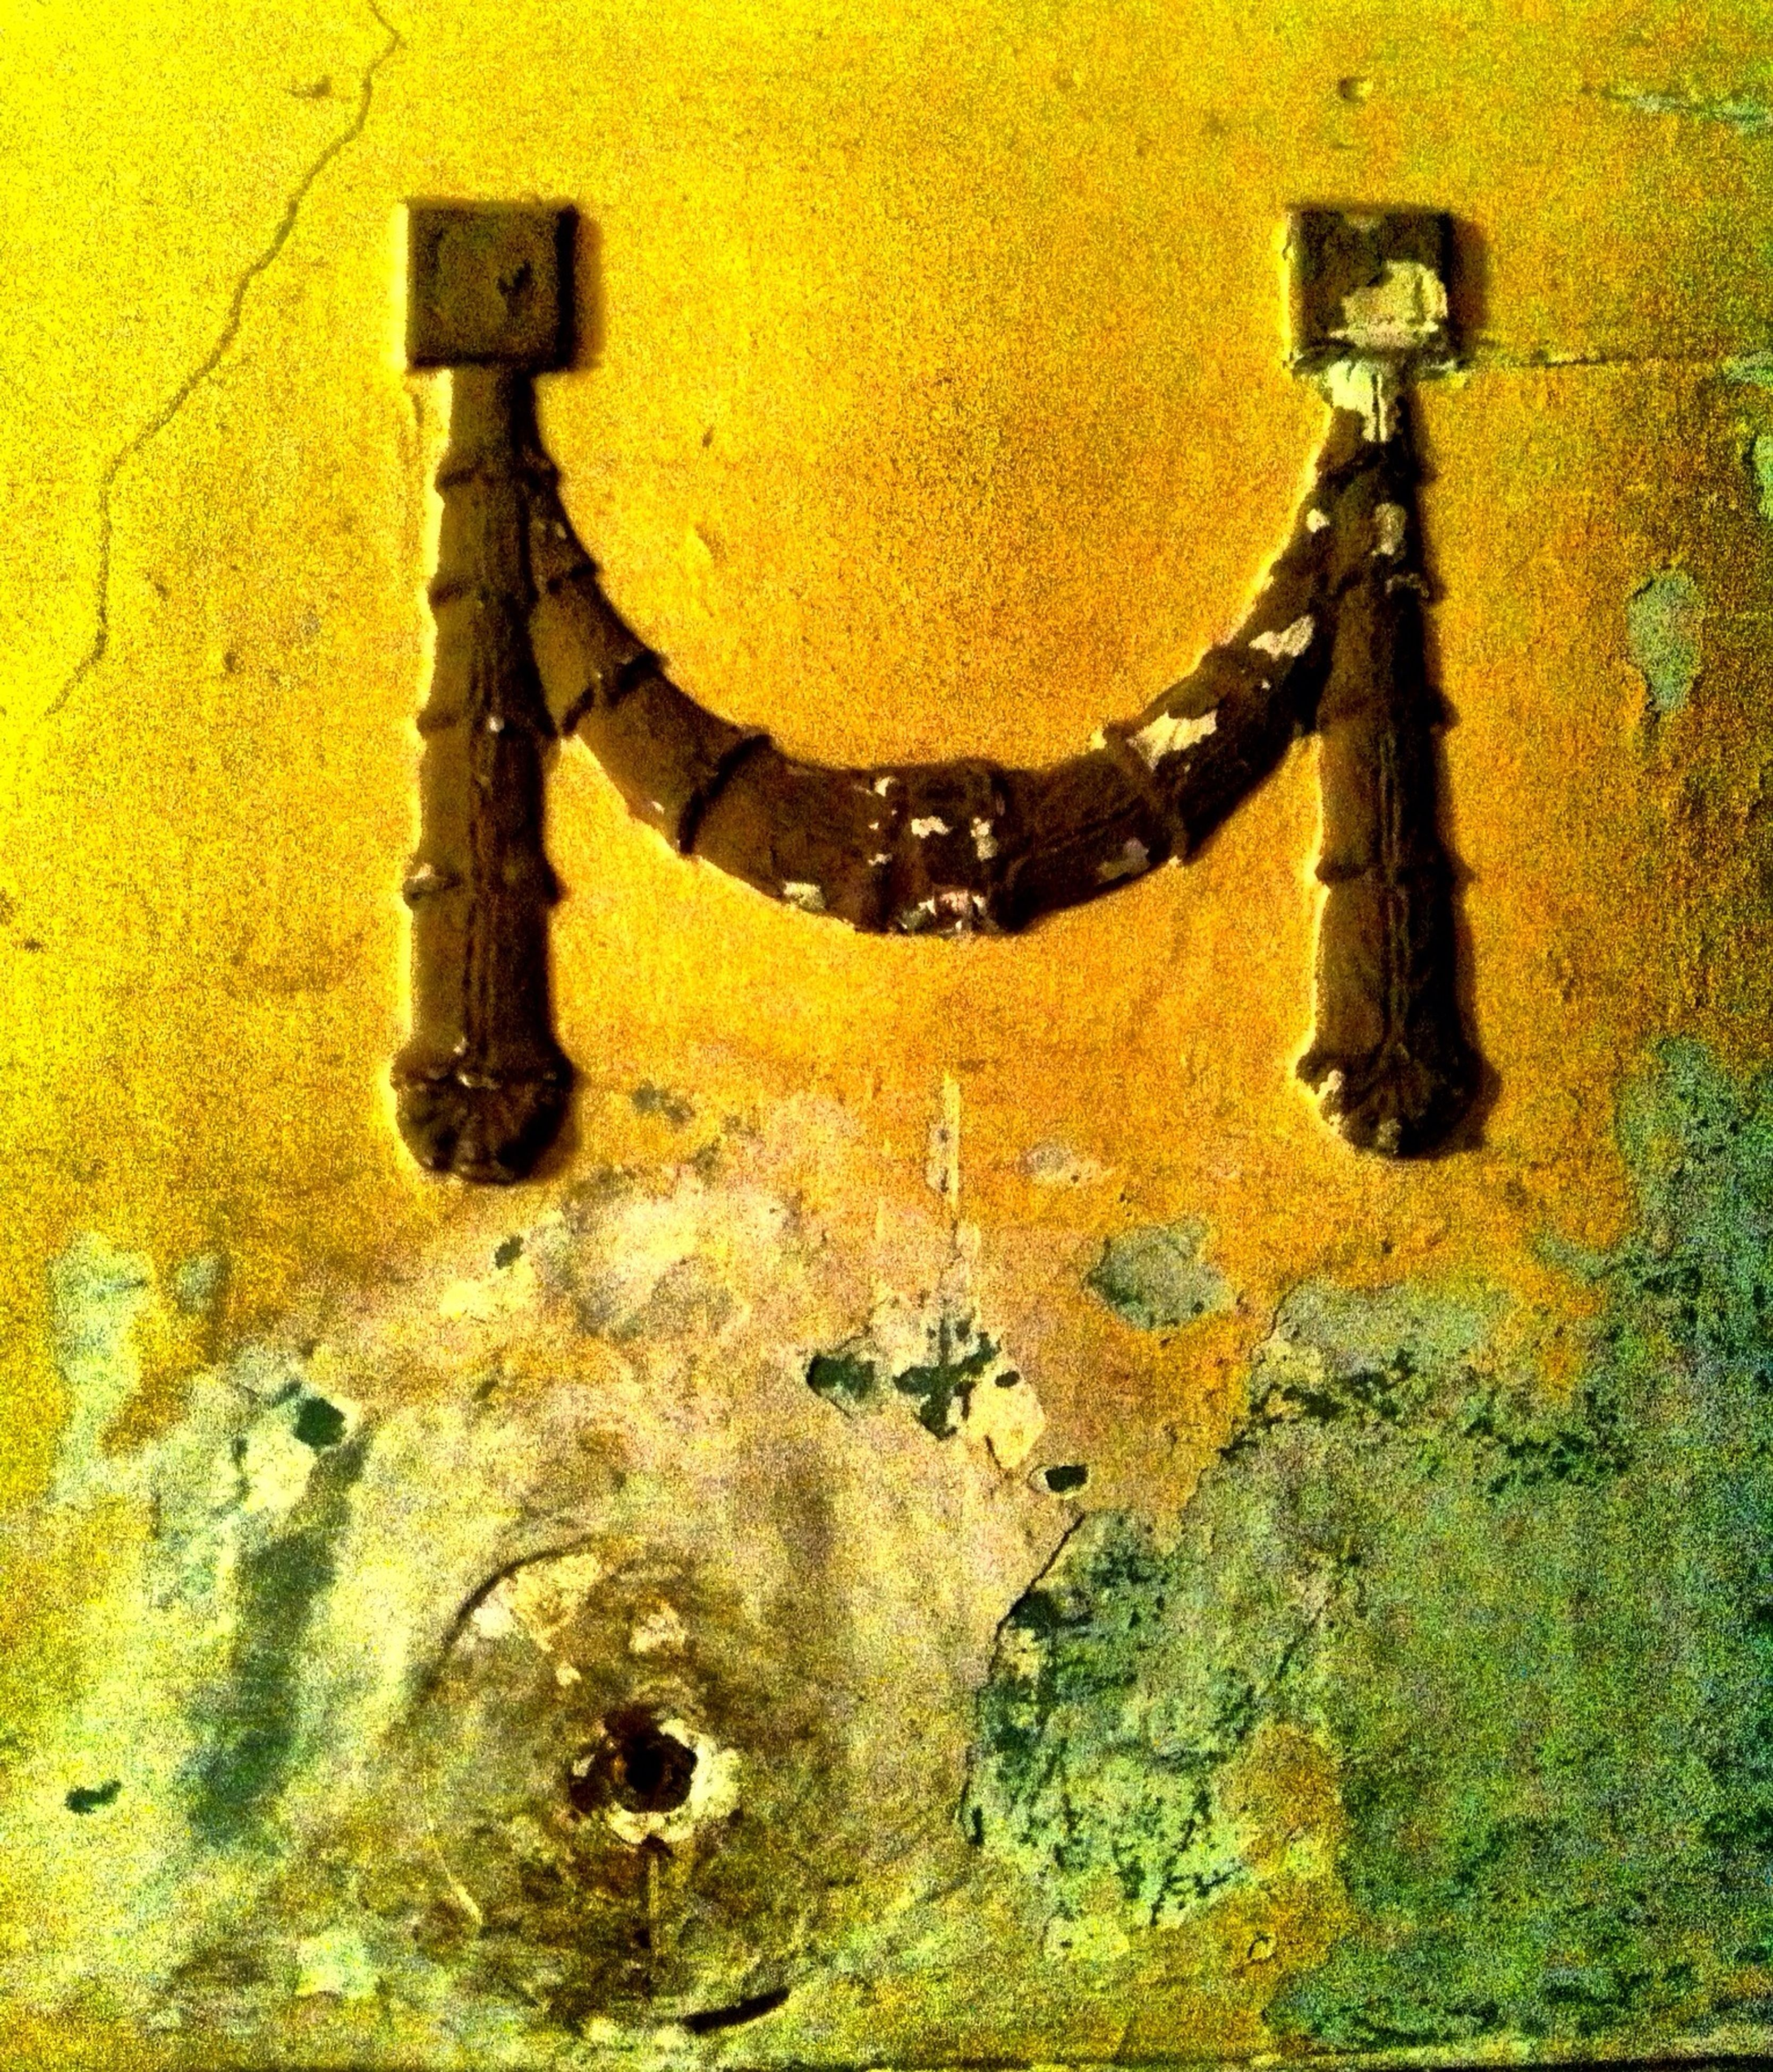 yellow, built structure, old, orange color, weathered, high angle view, architecture, outdoors, wall - building feature, metal, close-up, rusty, autumn, damaged, run-down, no people, full frame, deterioration, auto post production filter, backgrounds